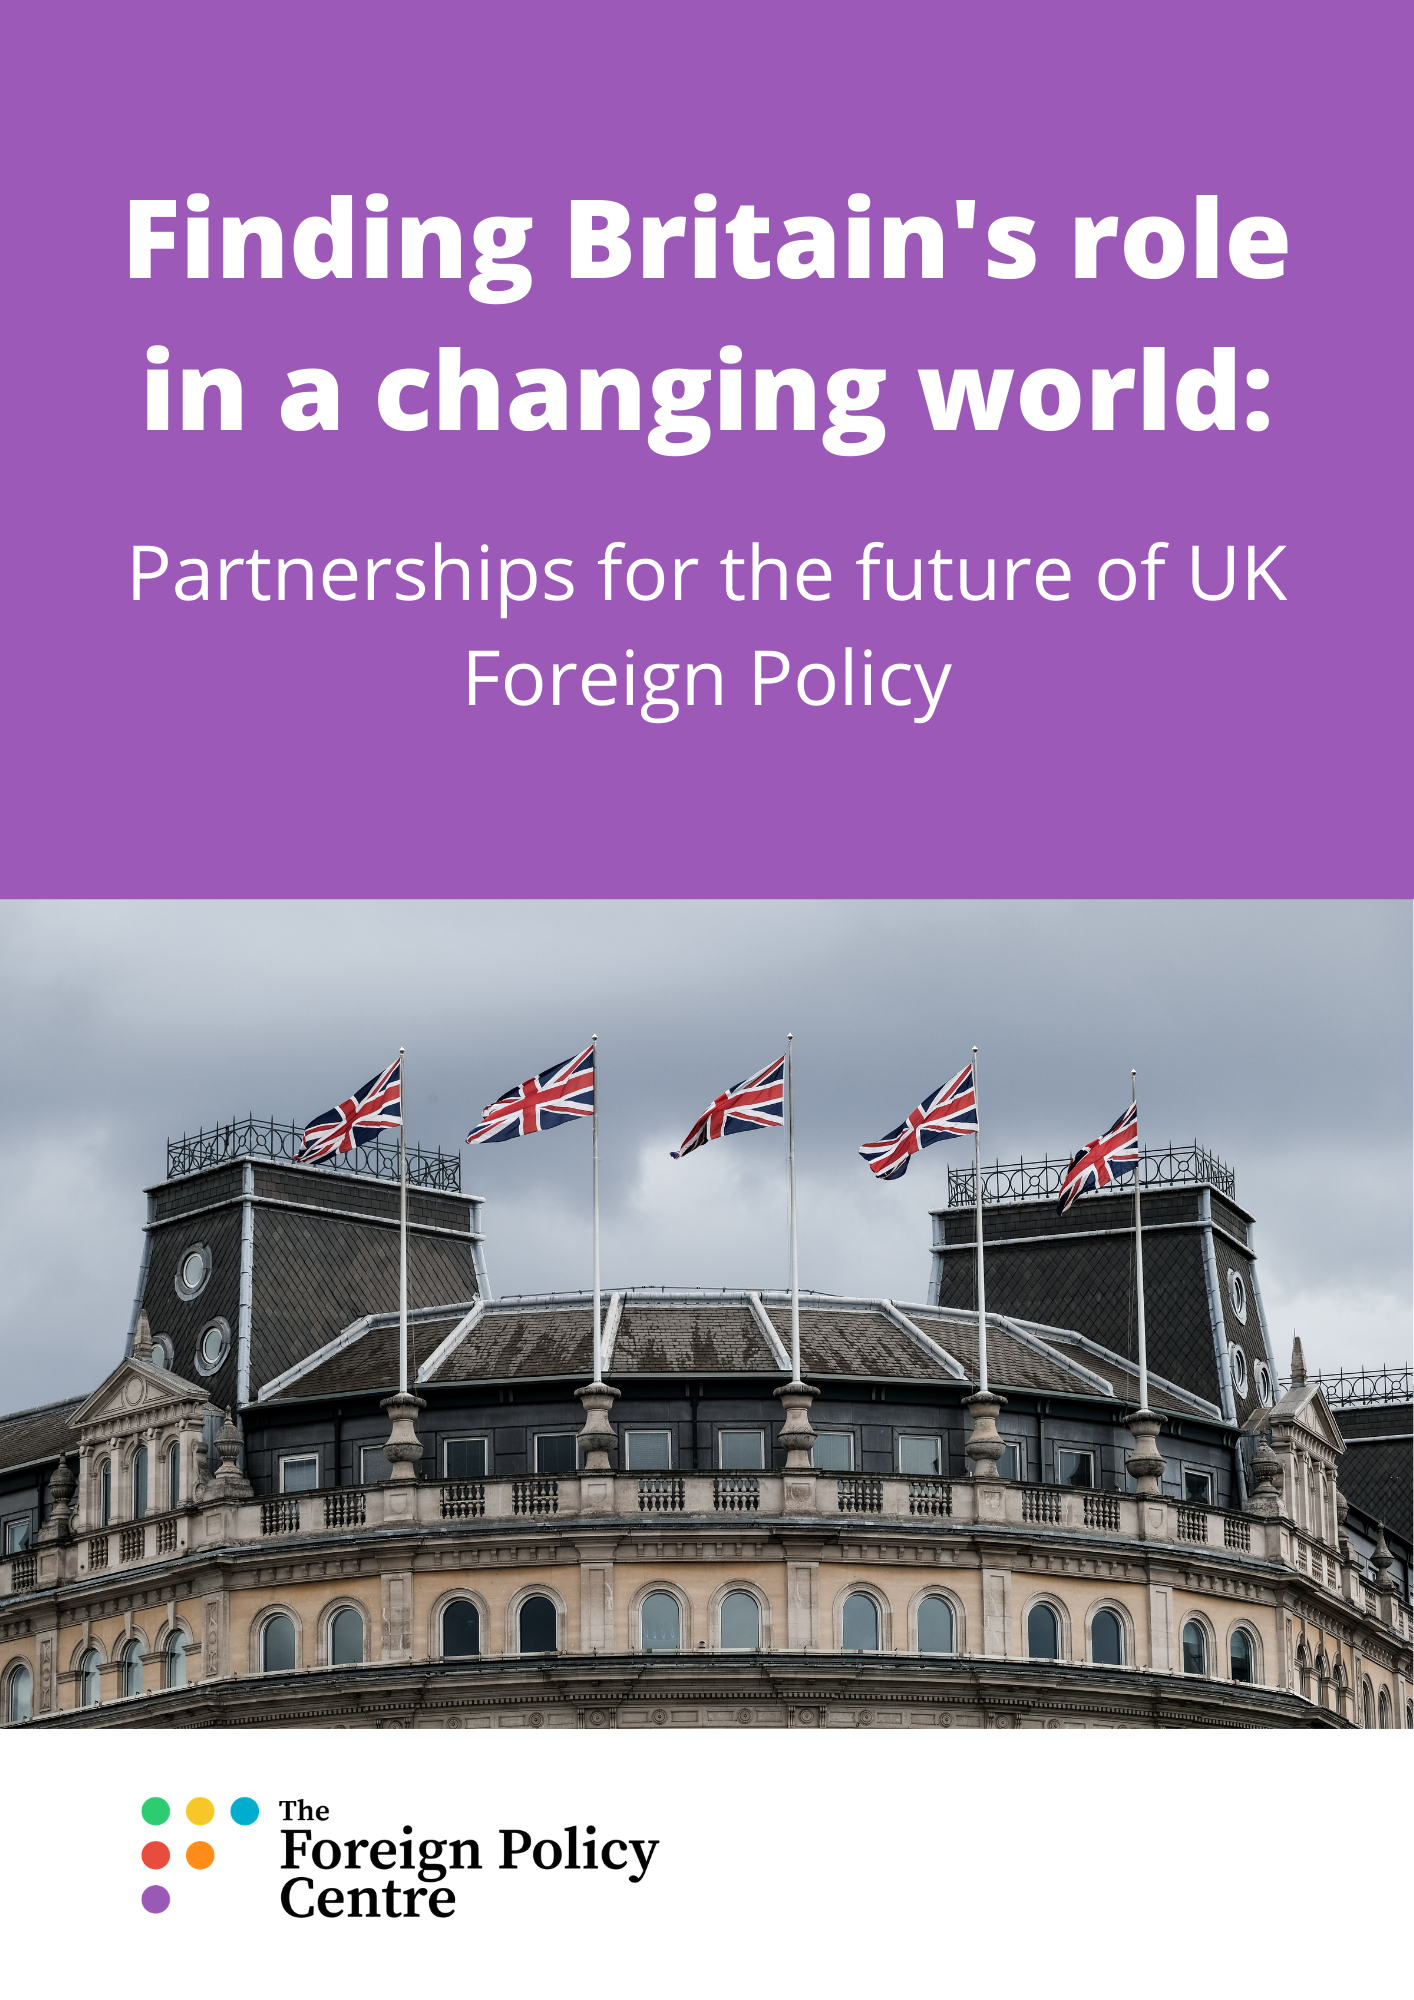 Partnerships for the future of UK Foreign Policy